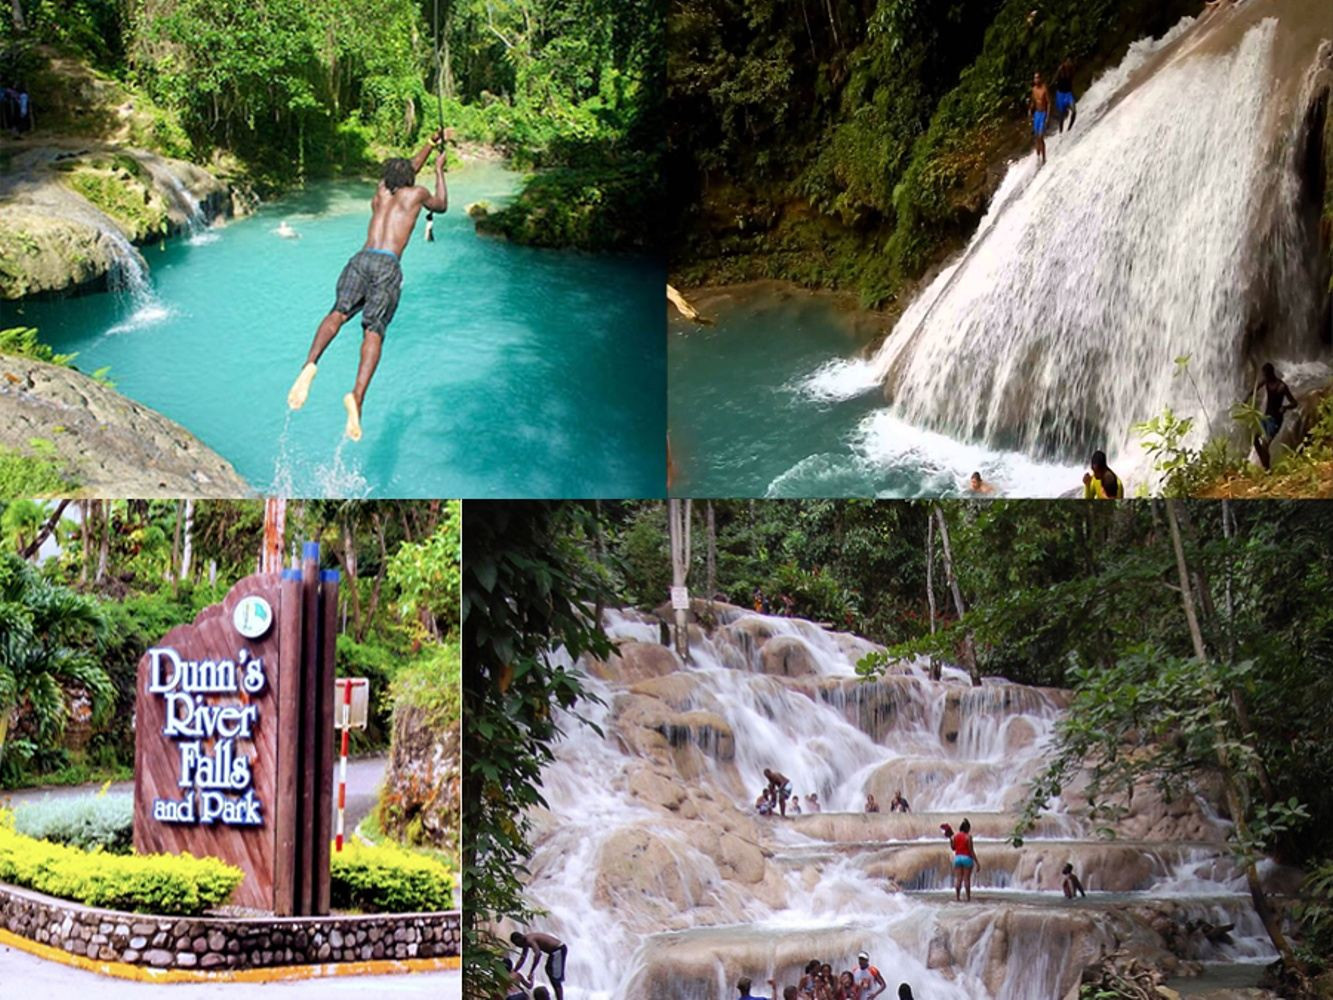 Blue_Hole_Combo_and_Dunn's_River_Falls__